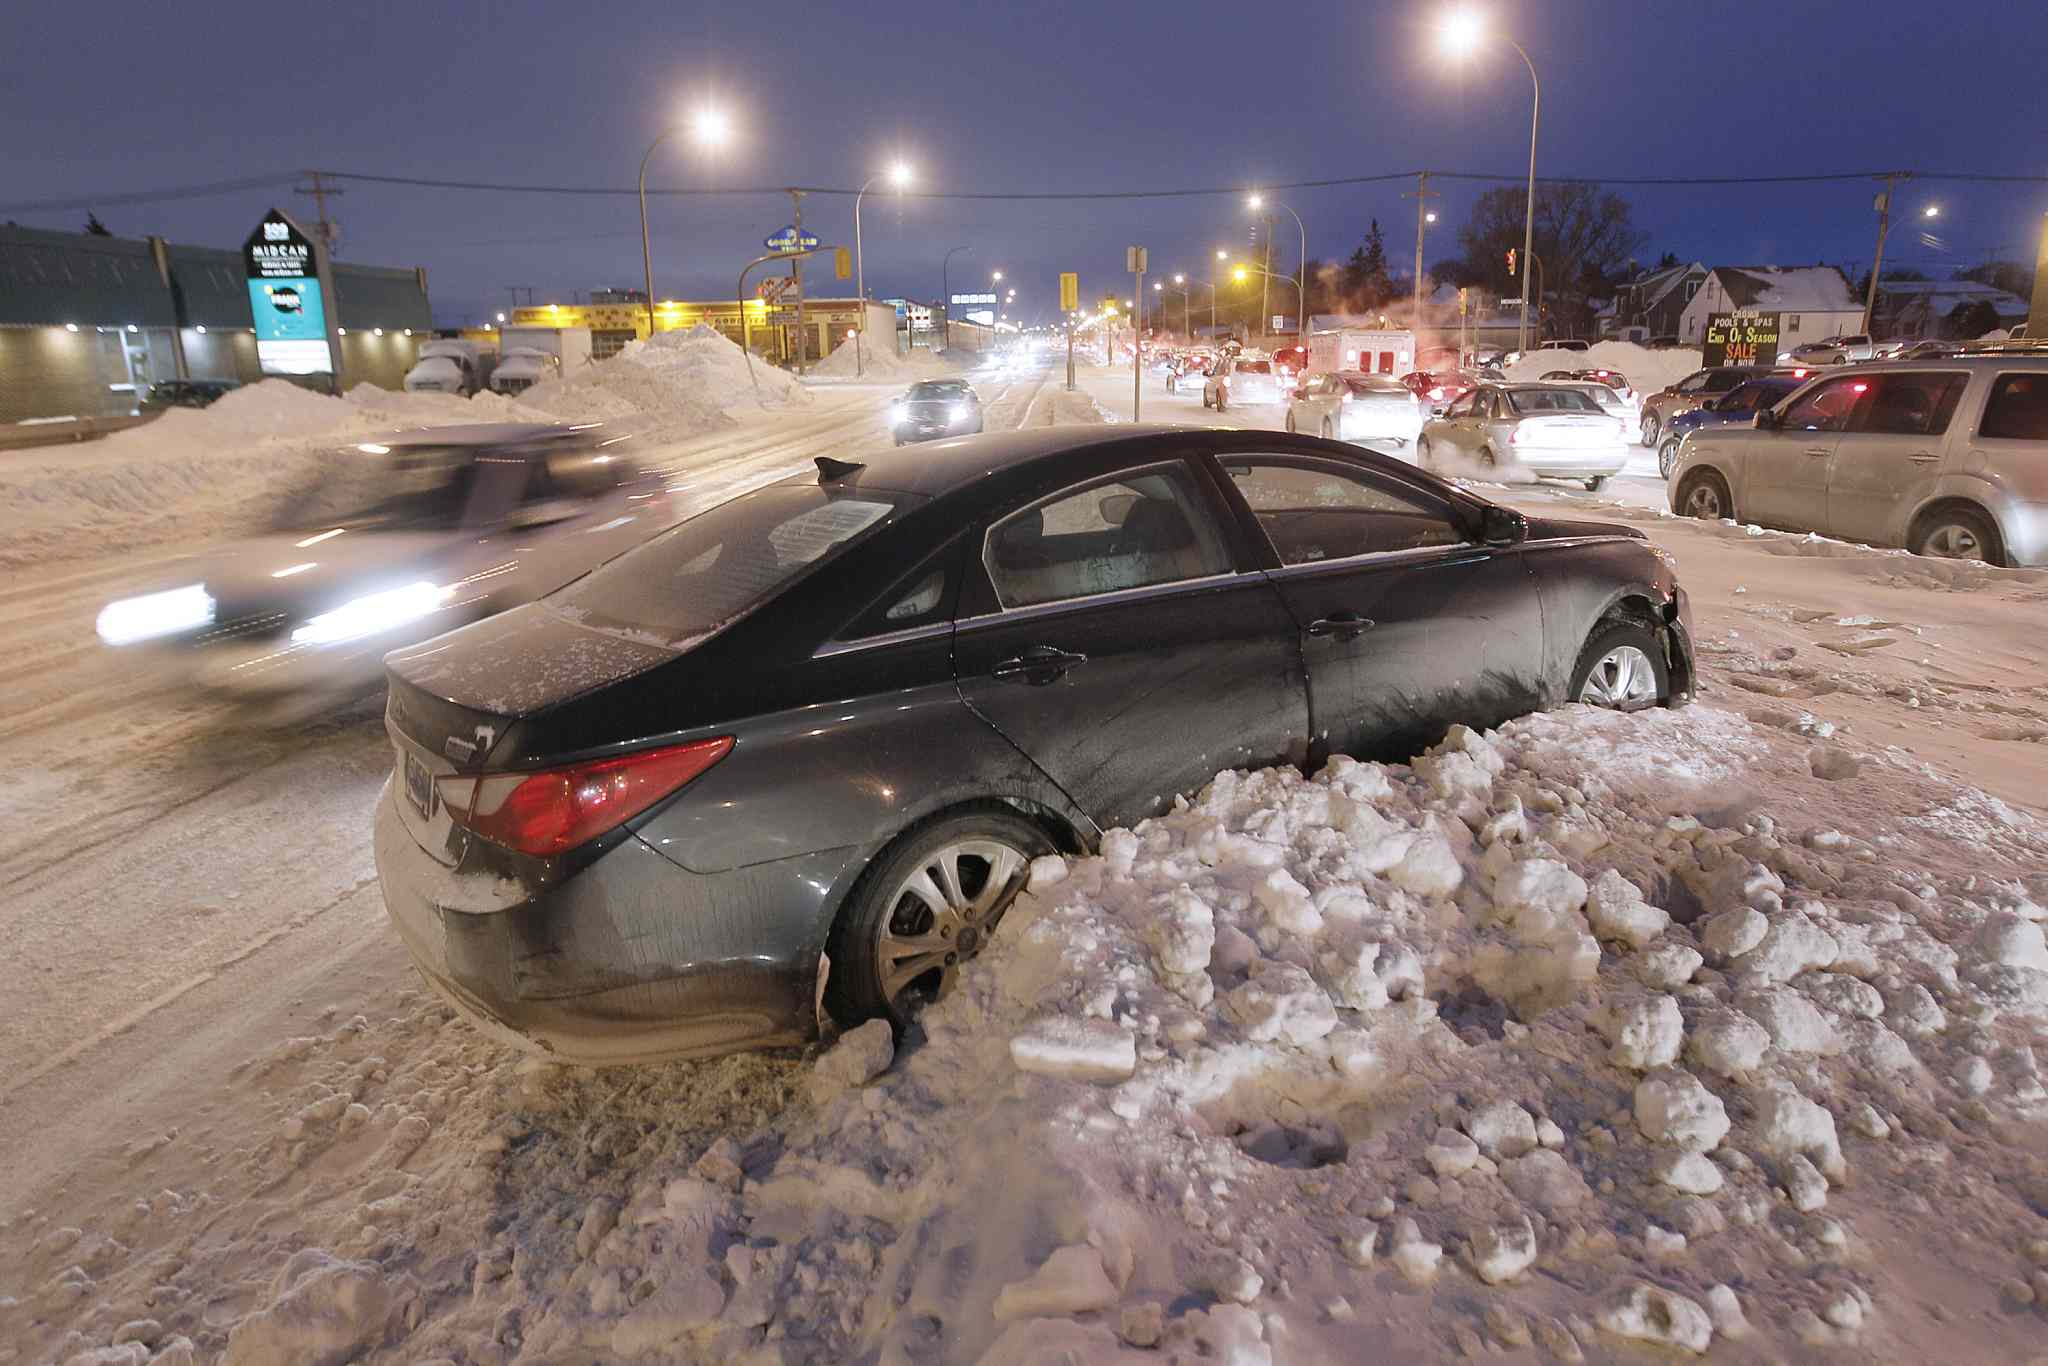 A car is seen on a Century Street boulevard after sliding on the icy, rutted road.